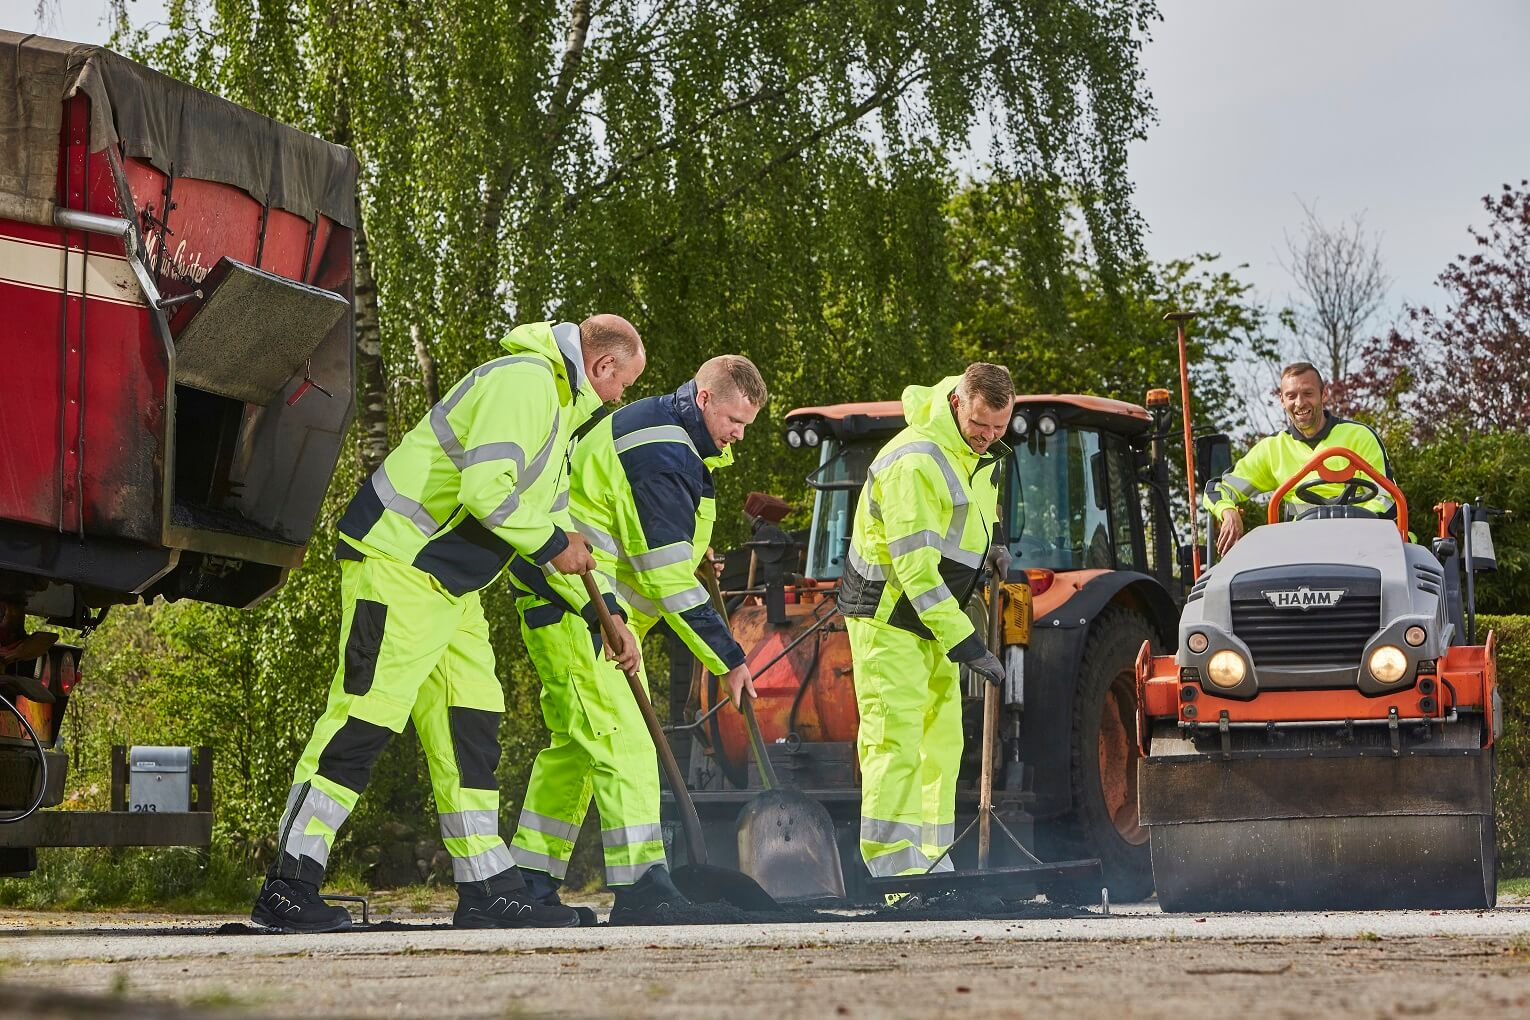 4 Men - Work - Hi-vis Clothing